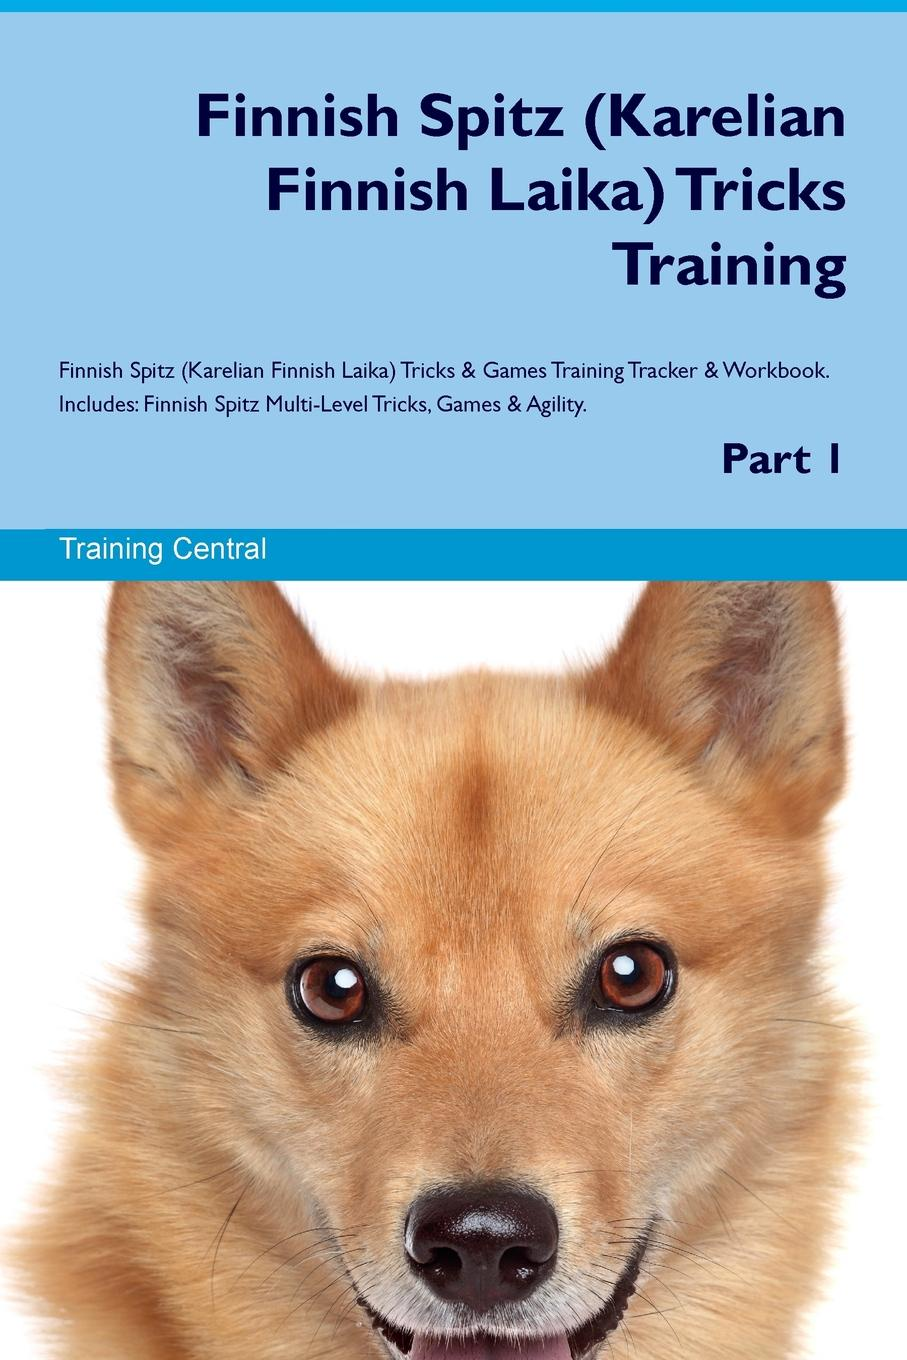 Training Central Finnish Spitz (Karelian Finnish Laika) Tricks Training Finnish Spitz (Karelian Finnish Laika) Tricks & Games Training Tracker & Workbook. Includes. Finnish Spitz Multi-Level Tricks, Games & Agility. Part 1 henkikirjoitusta seka muuttamista seurakunnasta toiseen ja papintodistuksia koskevat asetukset finnish edition